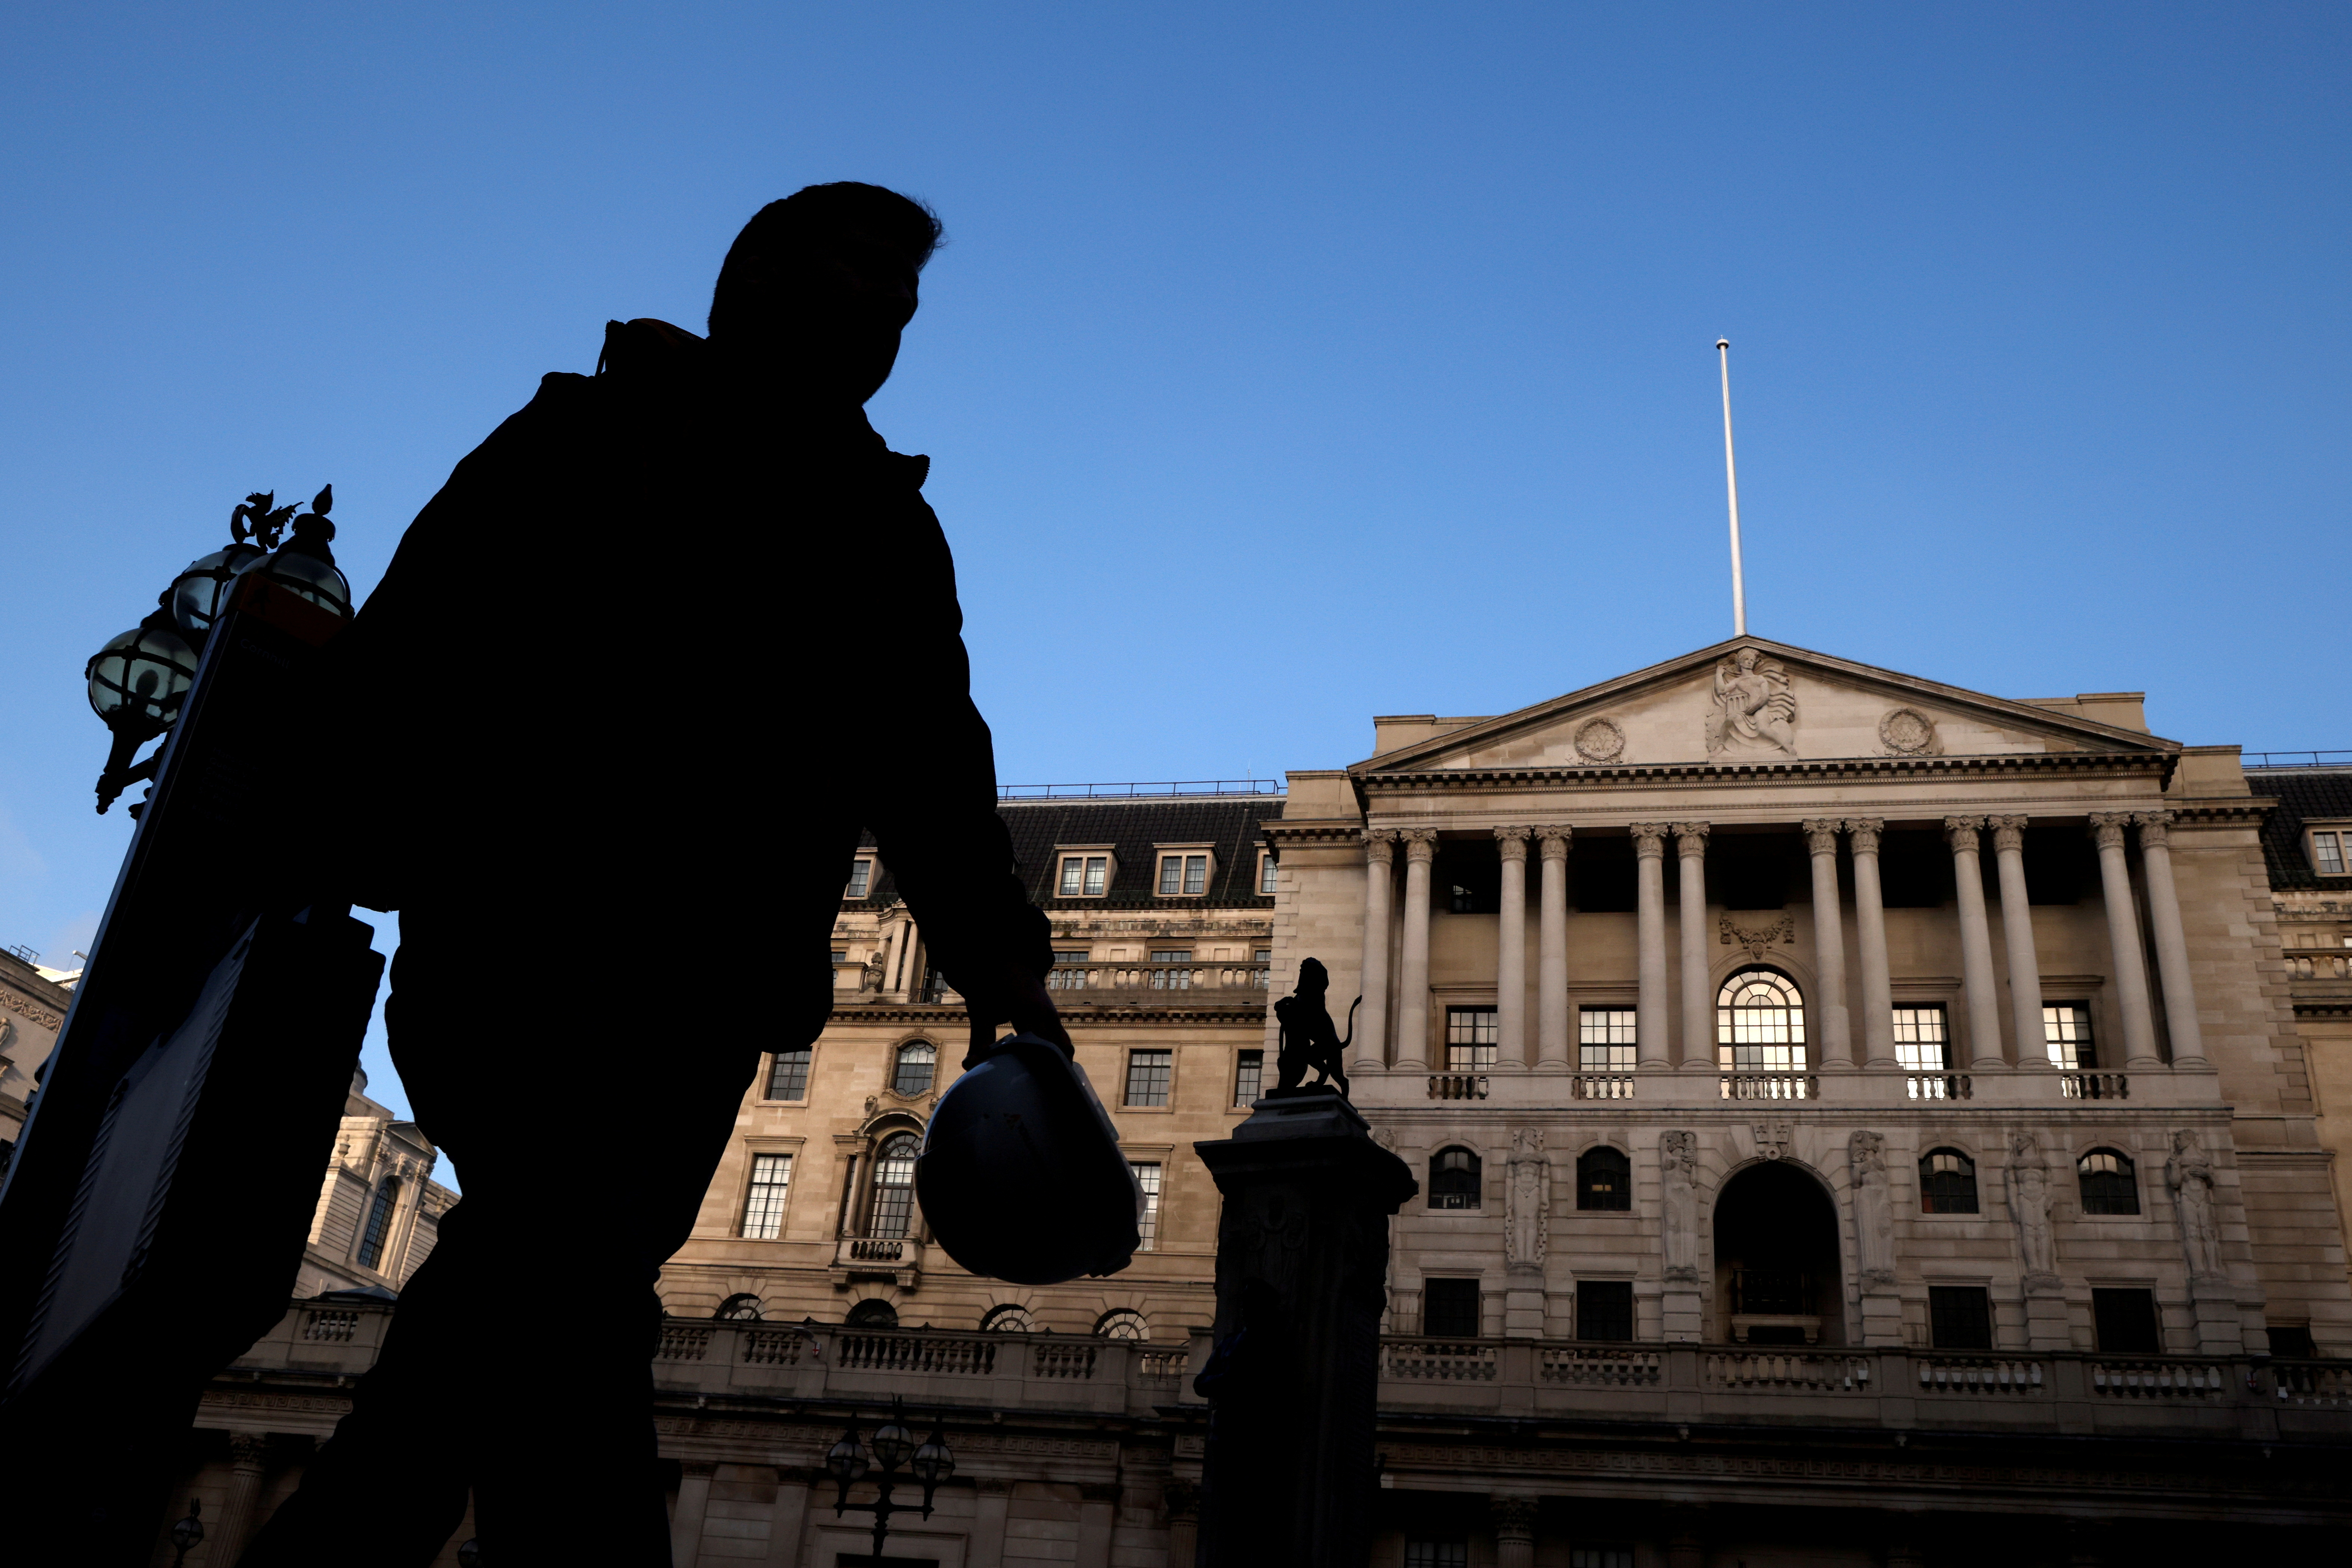 A person is silhouetted as he walks past The Bank of England, amid the outbreak of the coronavirus disease (COVID-19), in London, Britain, November 5, 2020. REUTERS/John Sibley